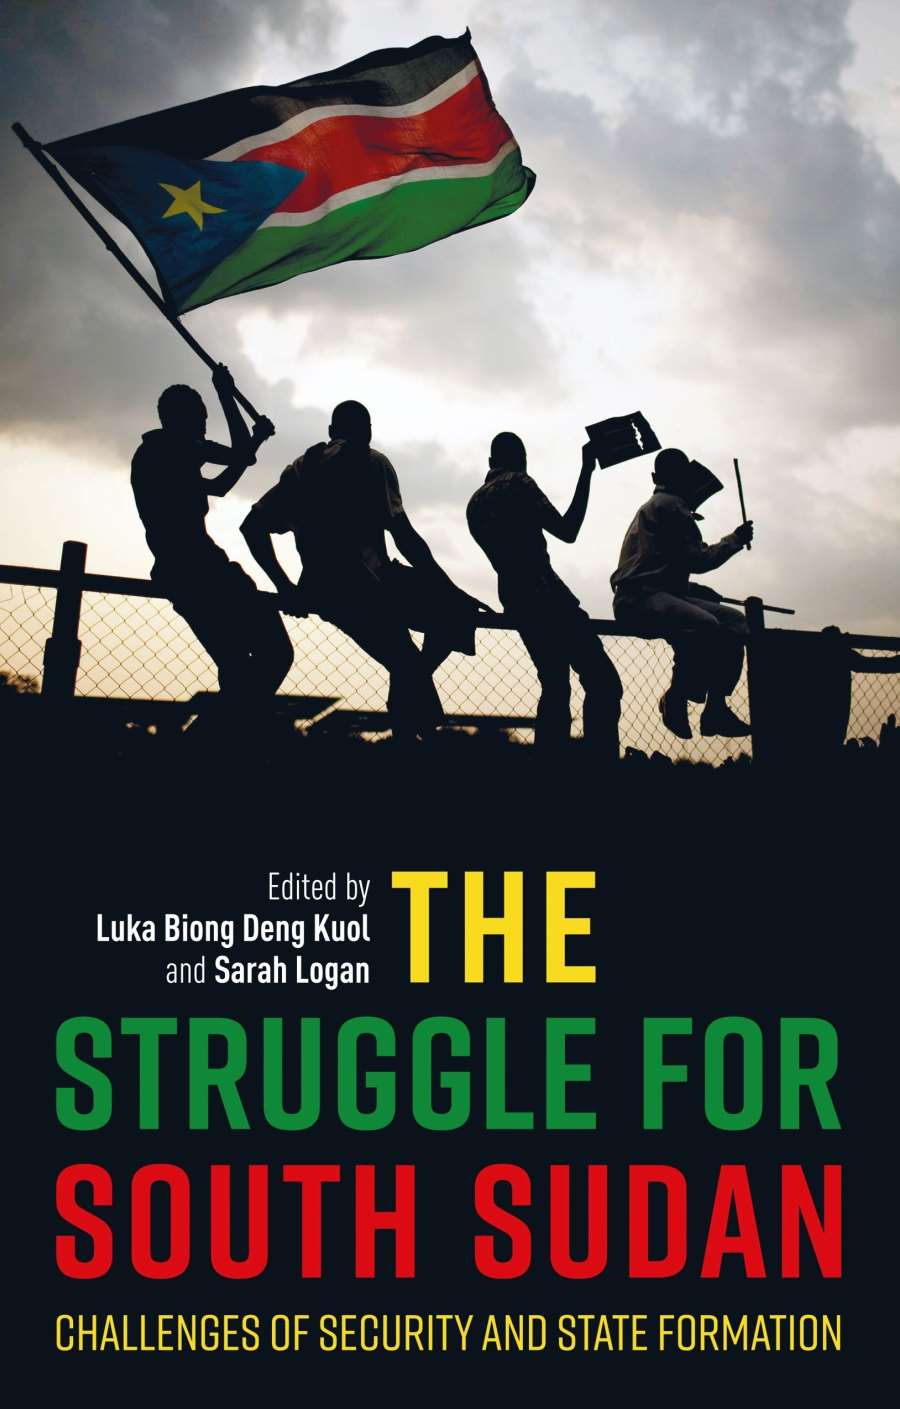 New Book from Global Fellow Luka Biong Deng Kuol: The Struggle for South Sudan